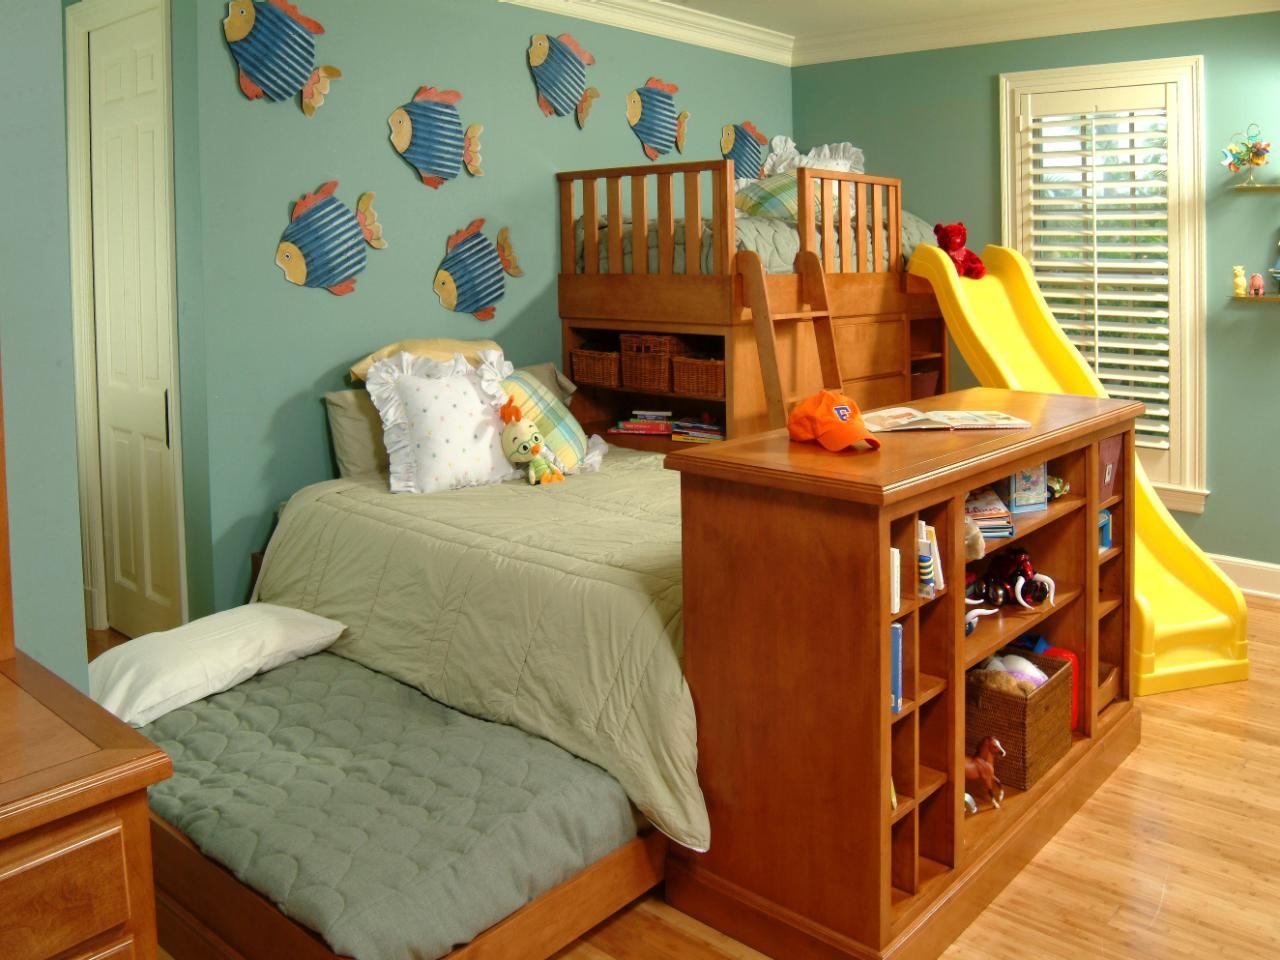 Kids Rooms Storage Solutions HGTV - Space kids room